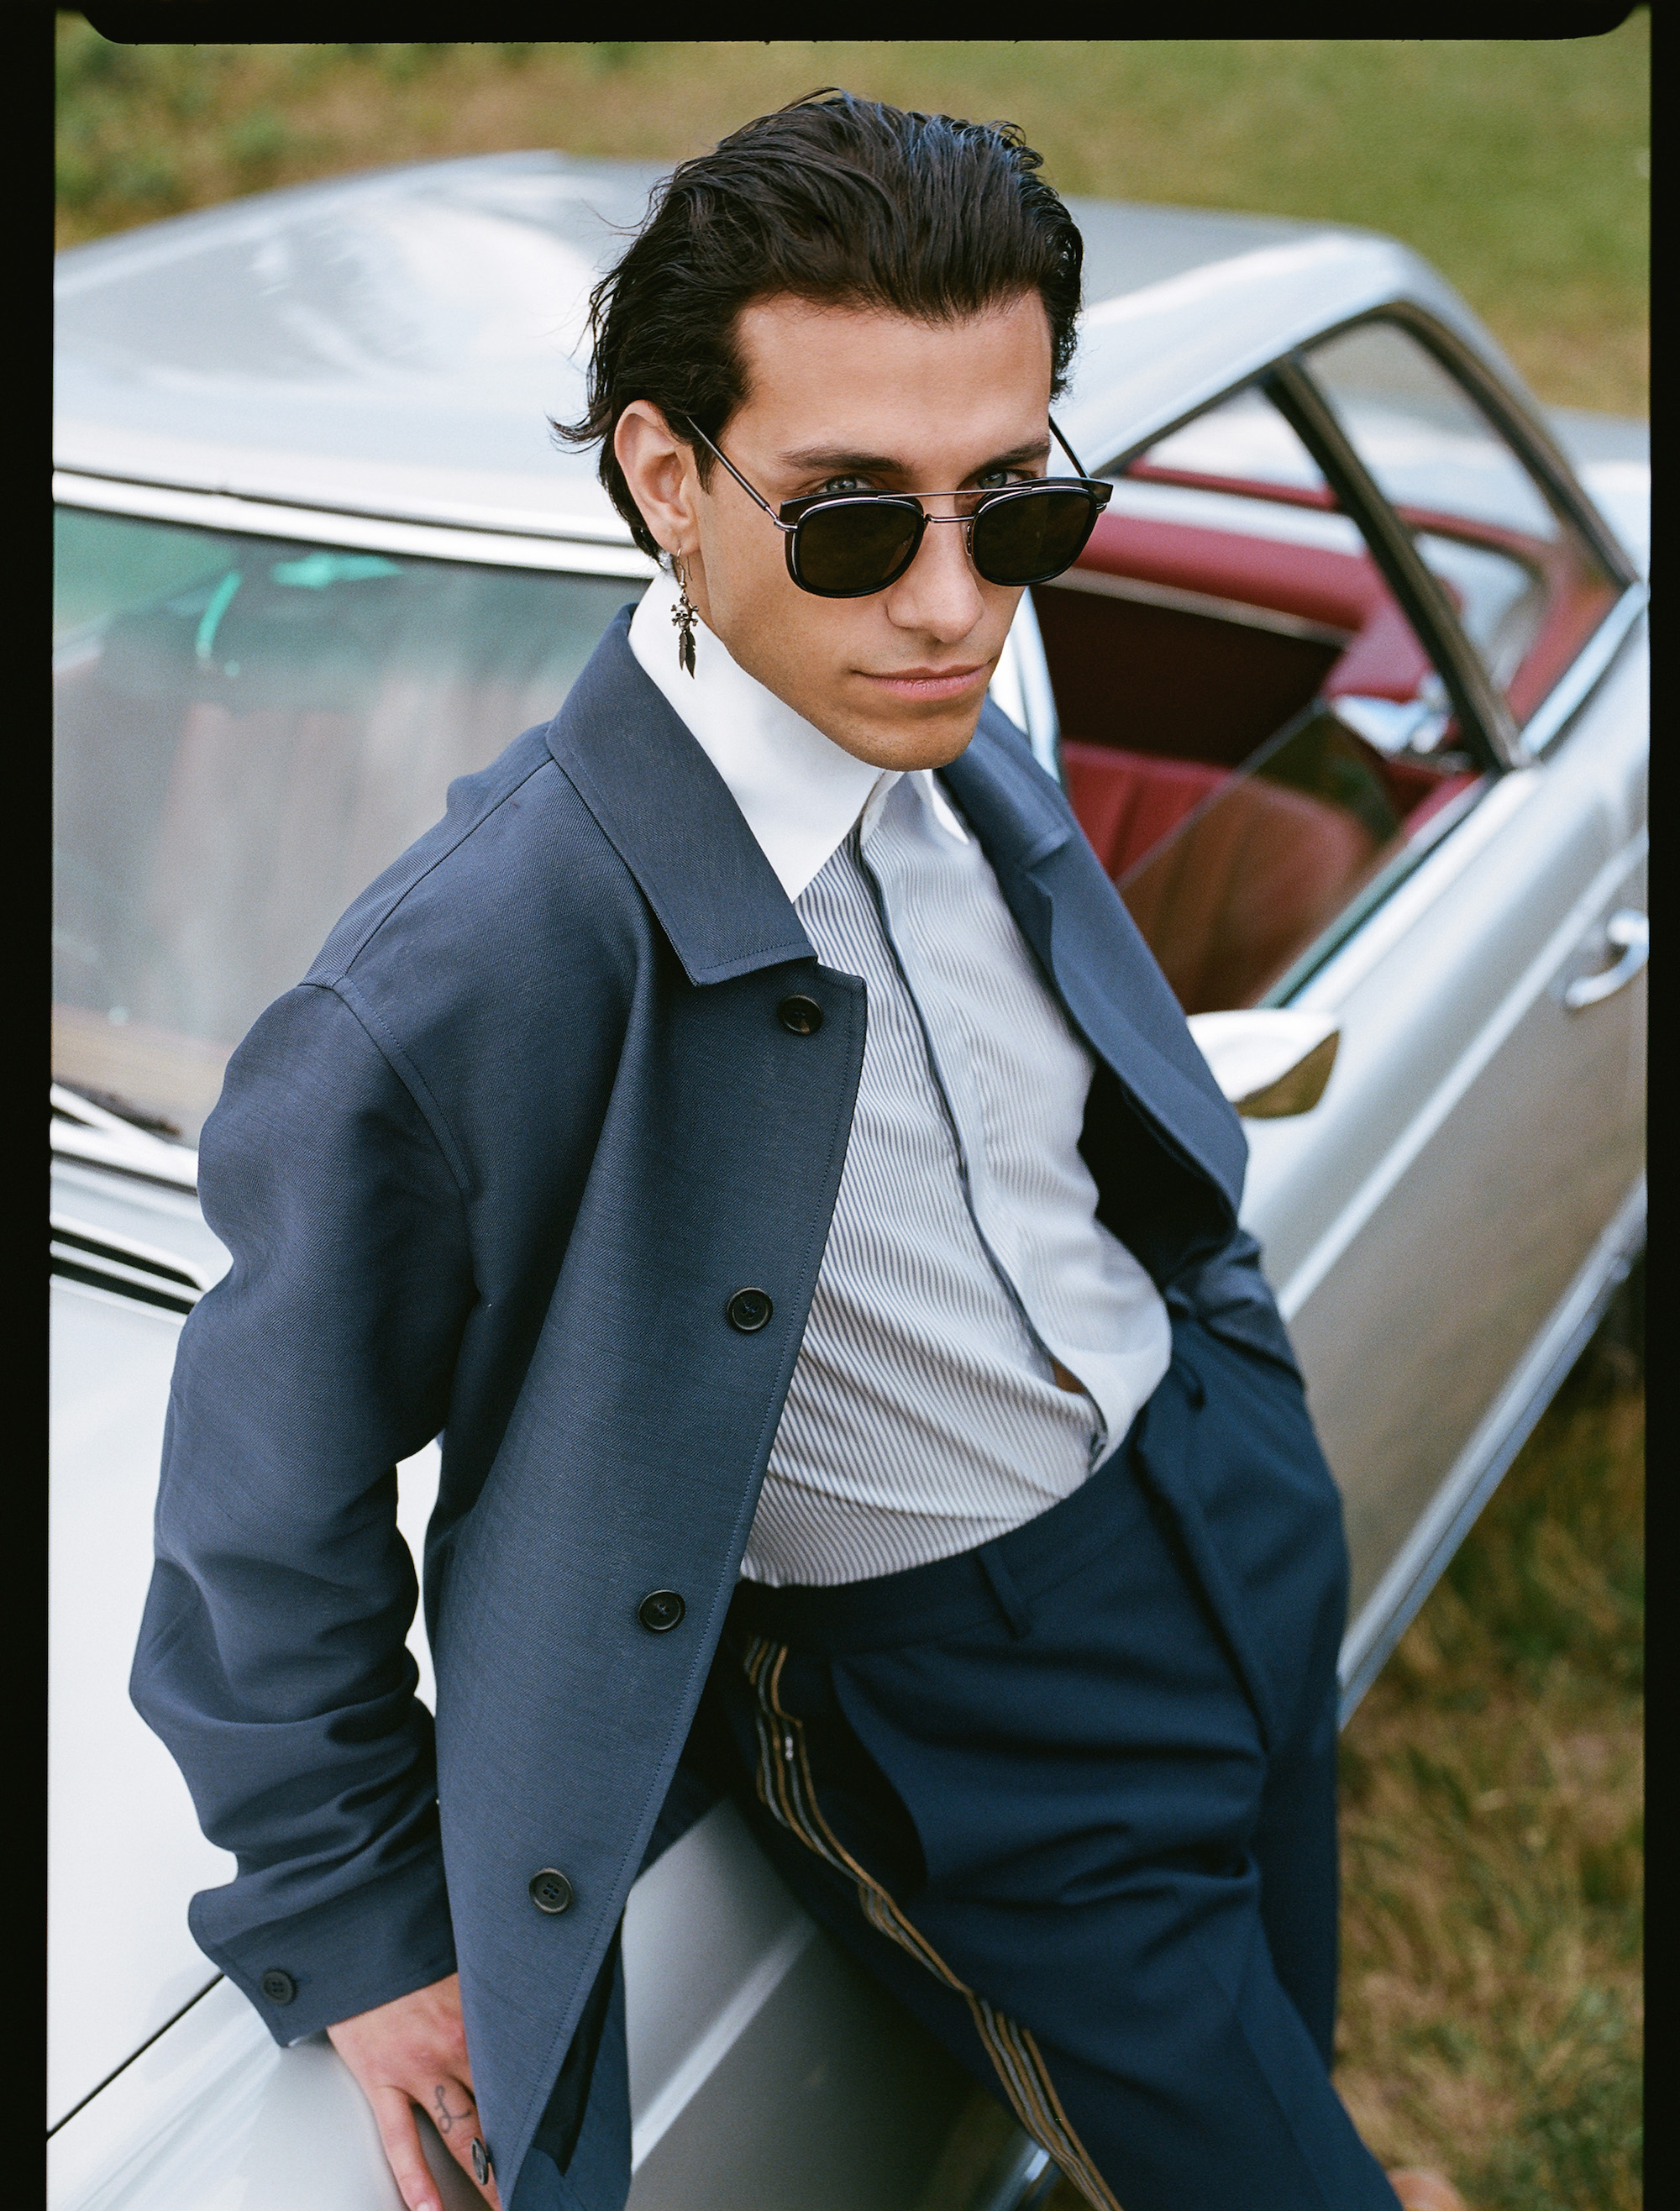 Rob Raco stars in Fendi's AW19 men's eyewear collection suit